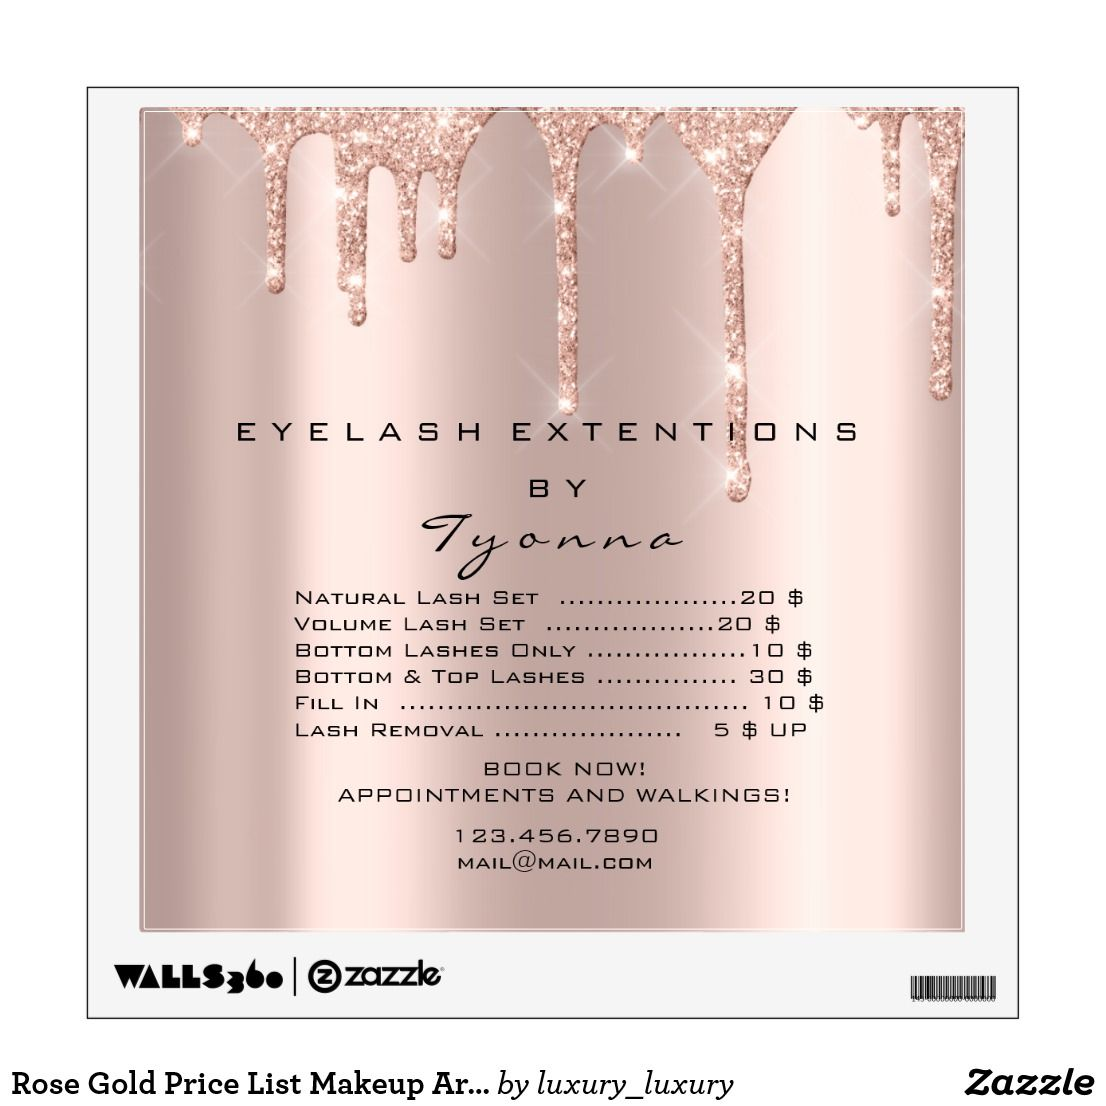 Rose Gold Price List Makeup Artist Lashe Extension Wall